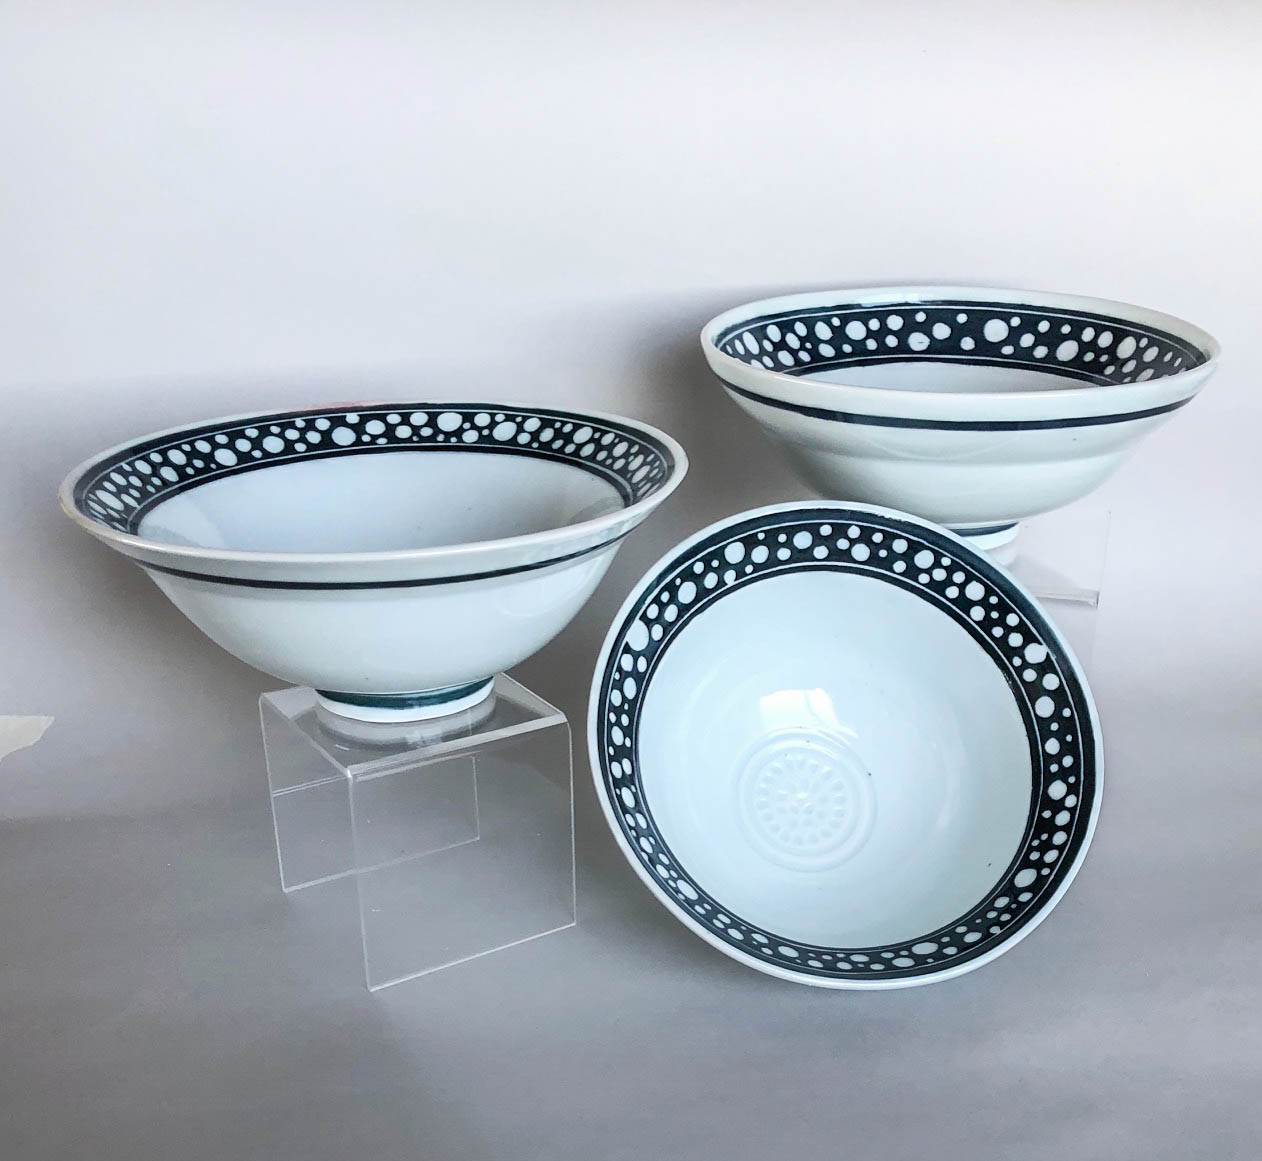 Medium sgrafitto bowls, hand carved slip design on wheel thrown porcelain, $42 each